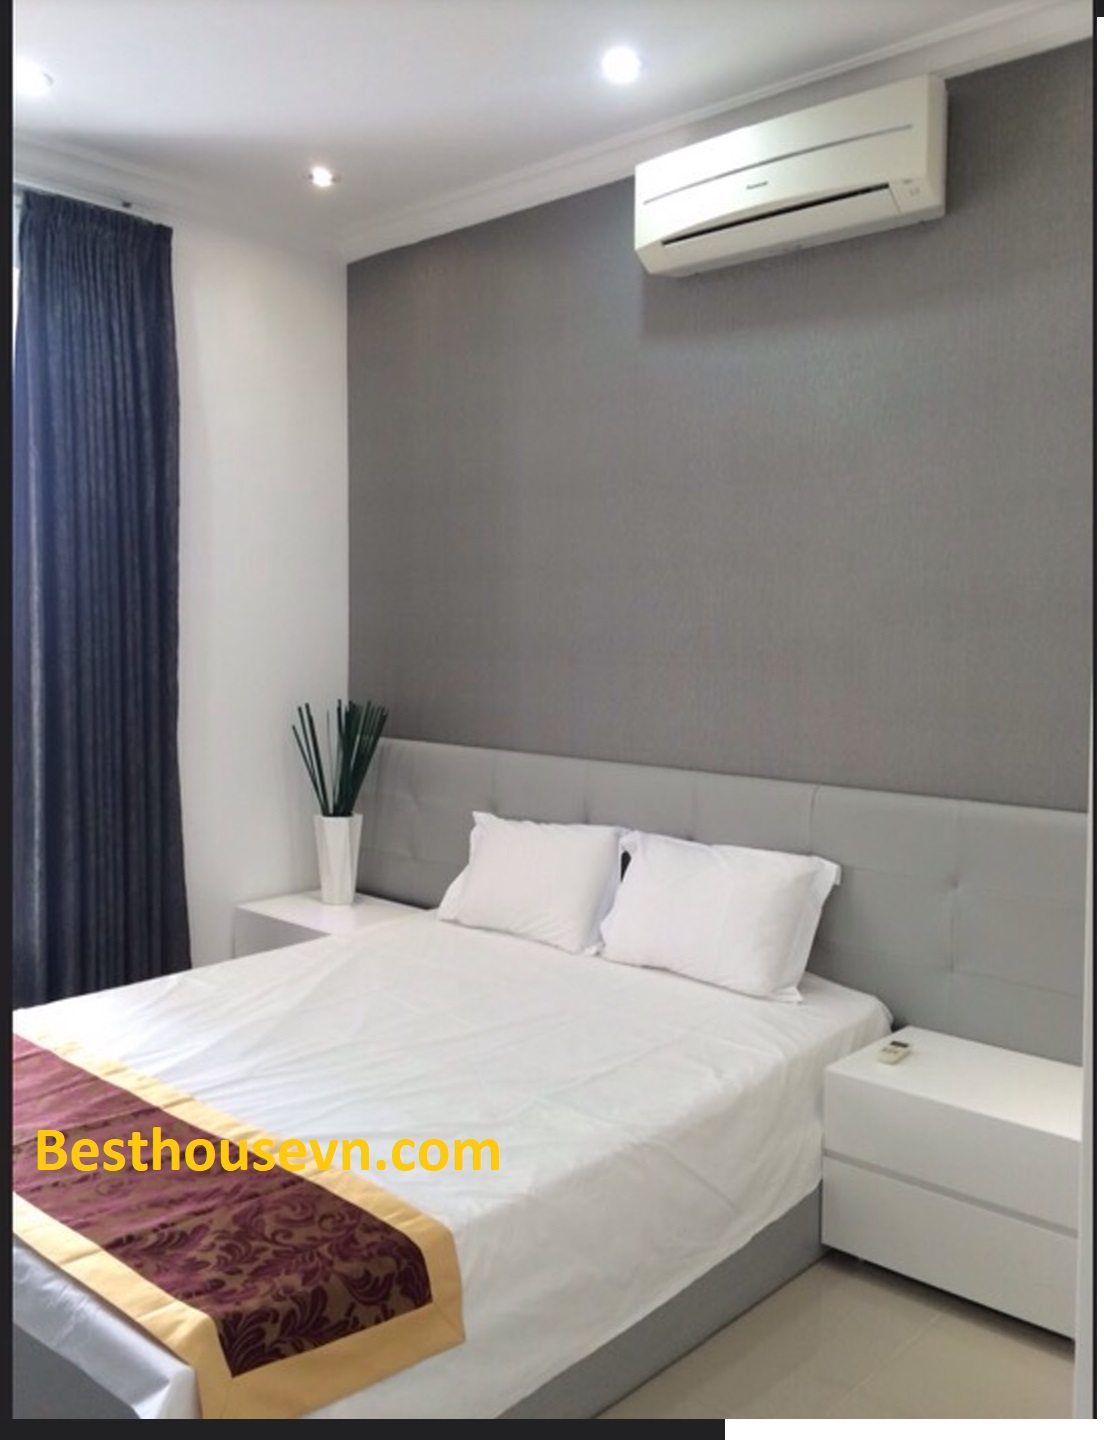 river-park-residence-apartment-for-rent-in-phu-my-hung-d-7-hcmc